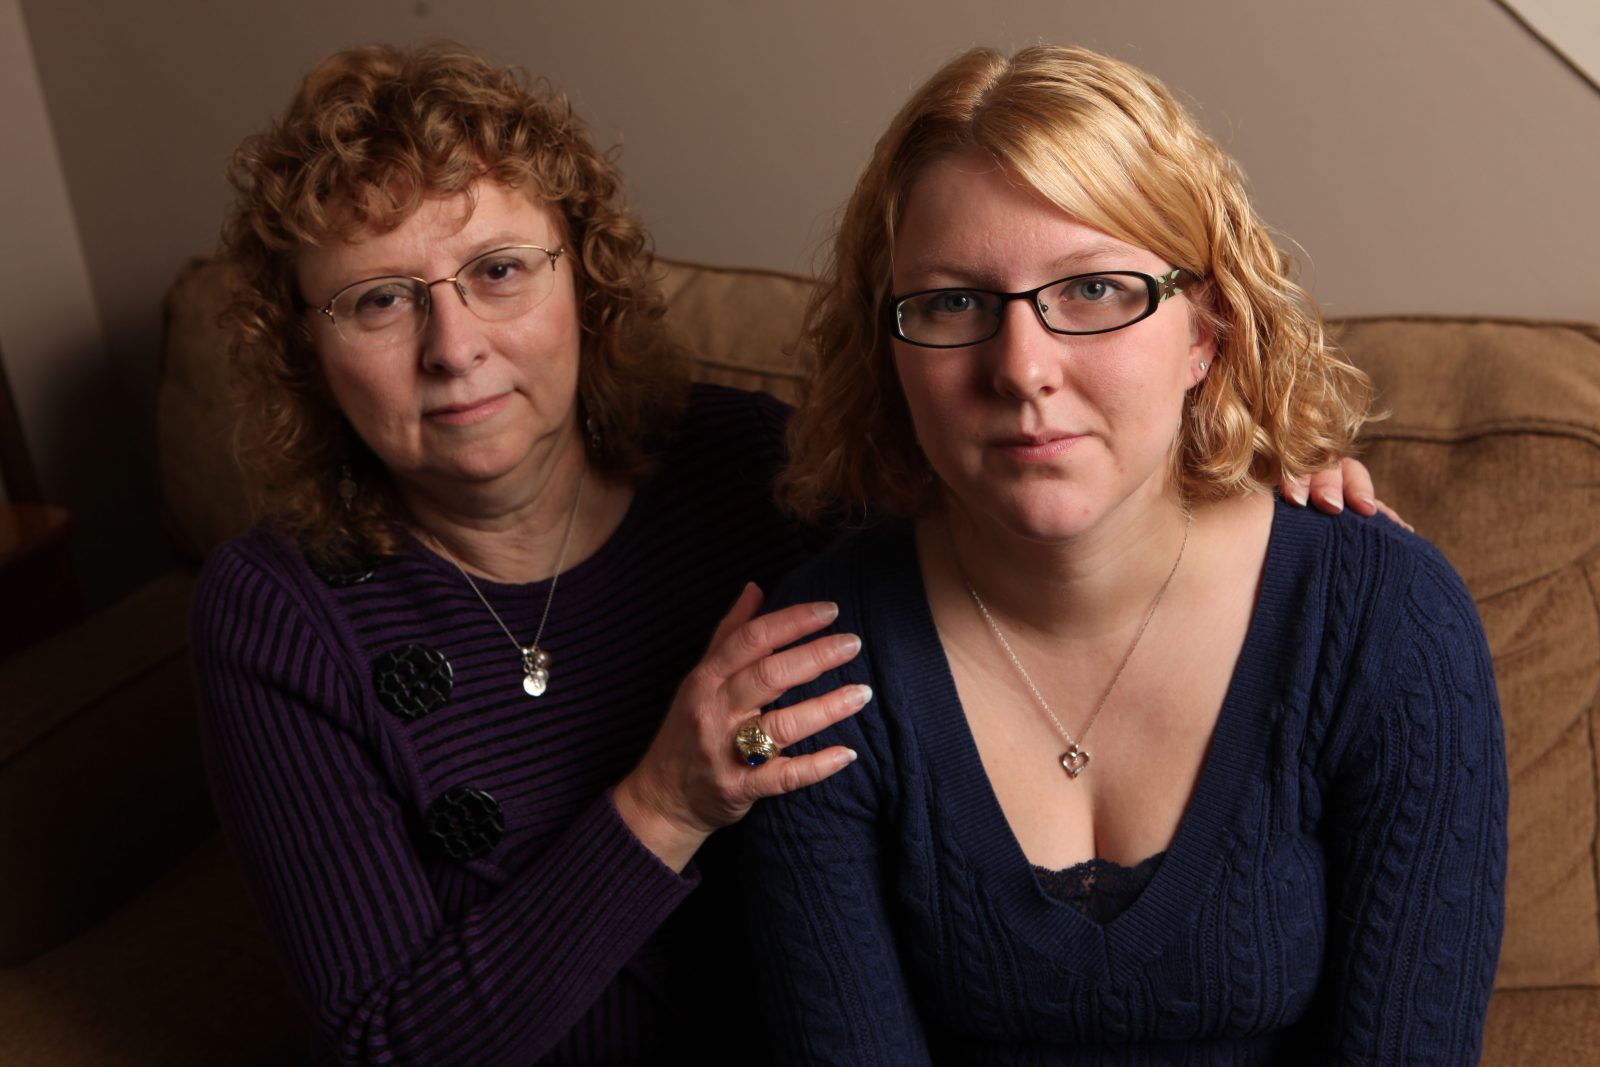 Karen Wielinski and her daughter, Jill Hohl. (News file photo)